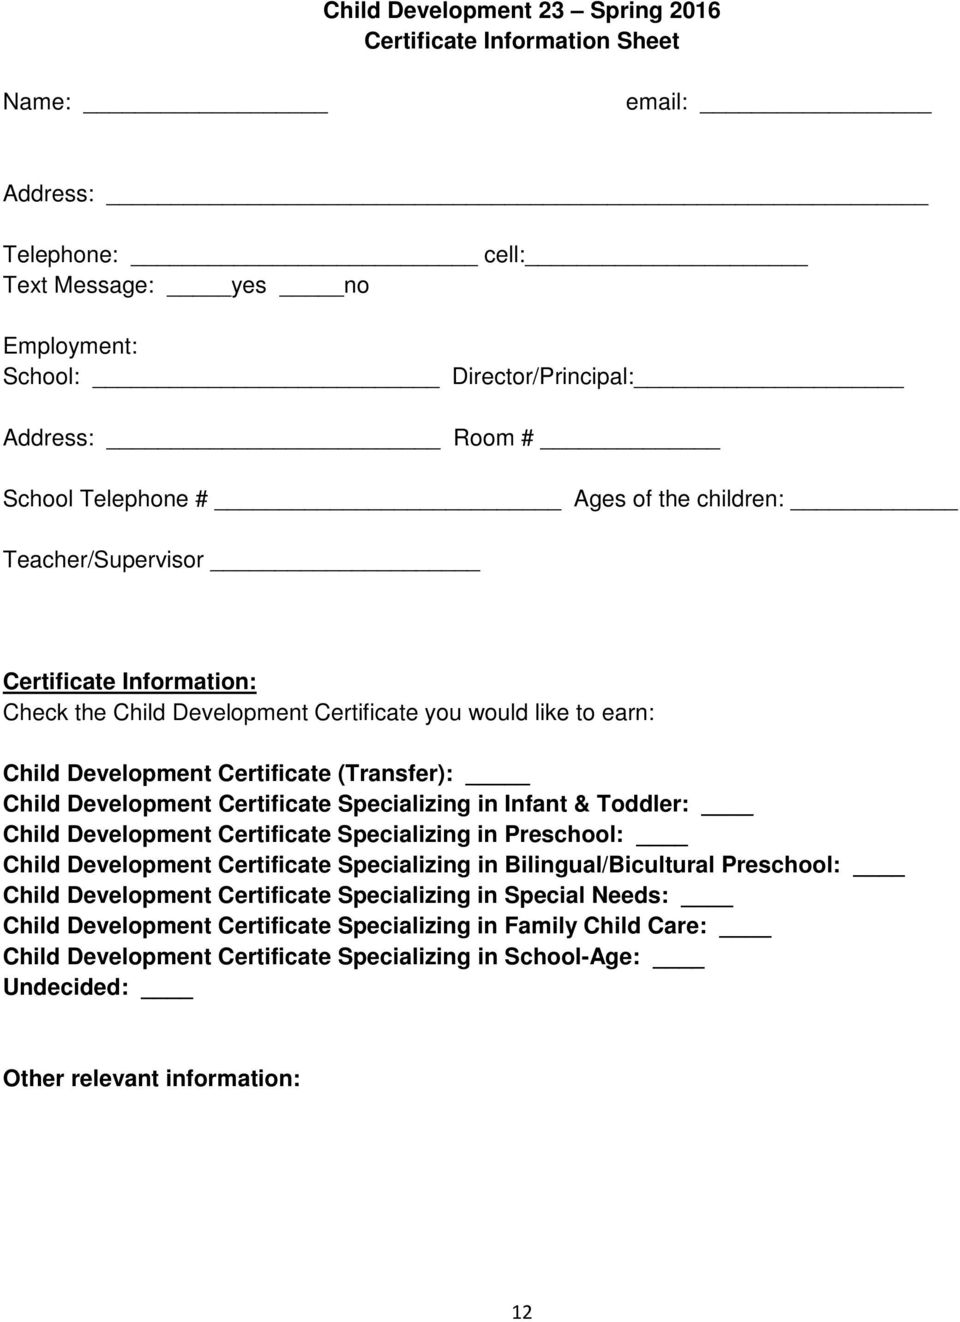 Certificate Specializing in Infant & Toddler: Child Development Certificate Specializing in Preschool: Child Development Certificate Specializing in Bilingual/Bicultural Preschool: Child Development